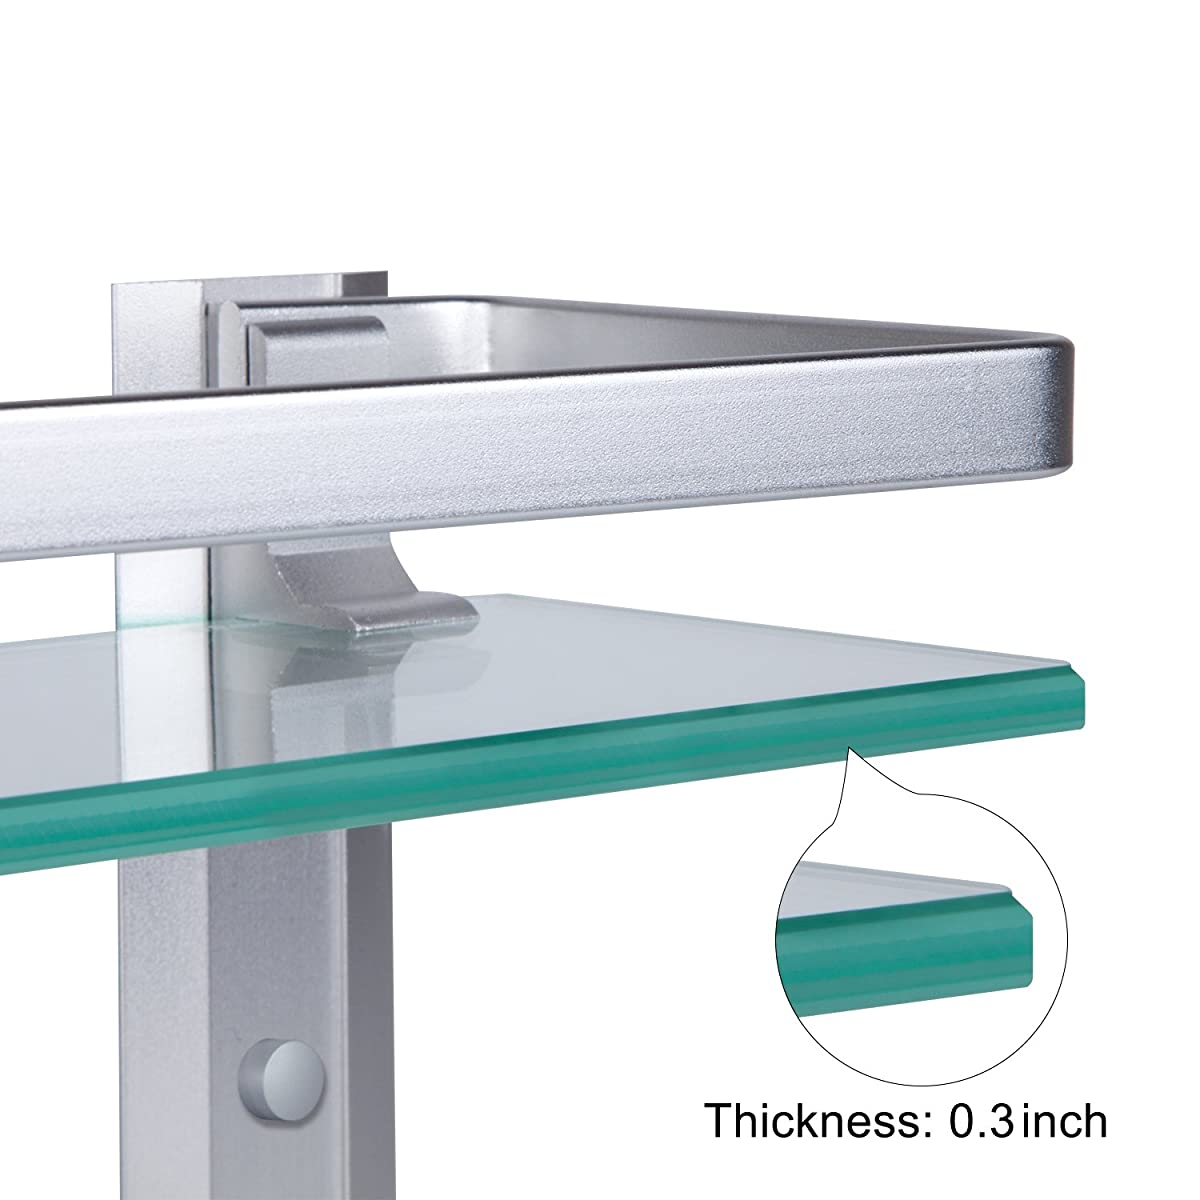 Vdomus Tempered Glass Bathroom Shelf with Towel Bar Wall Mounted Shower storage15.2 by 4.5 inches, Brushed Silver Finish